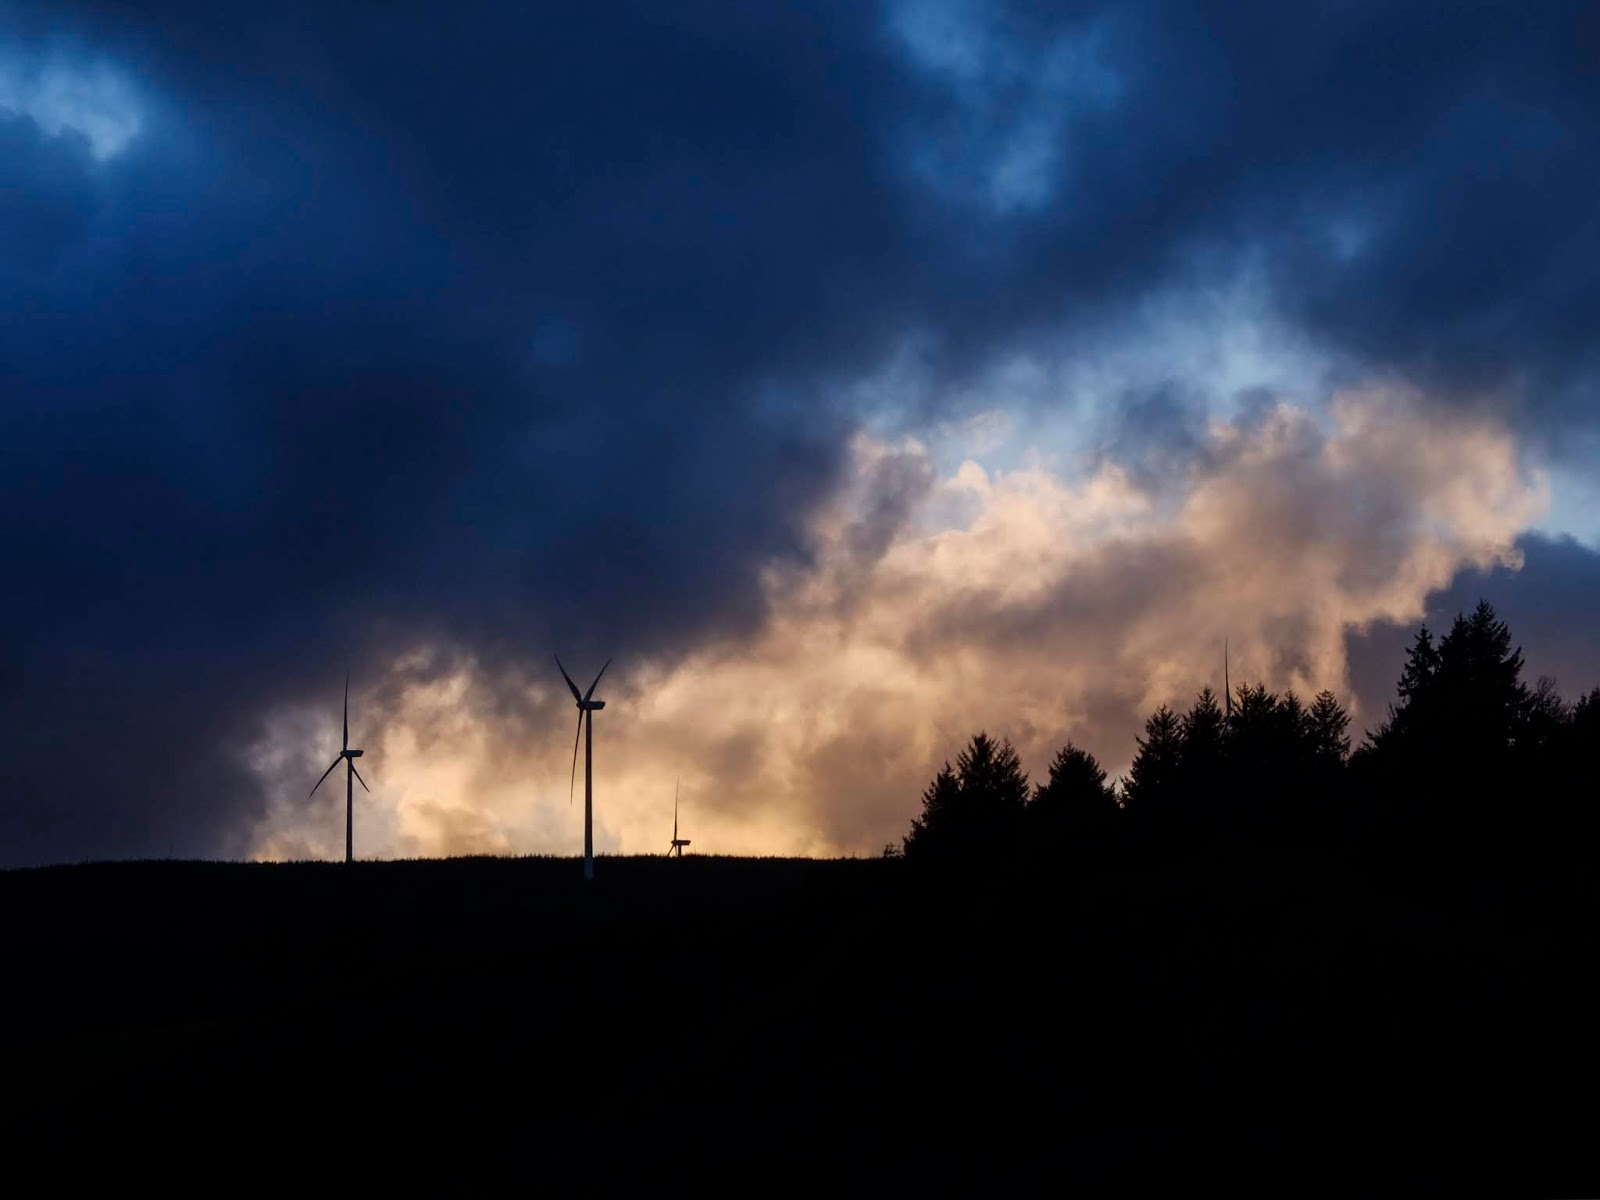 Windmills and forestry with light and dark sunset clouds overhead.